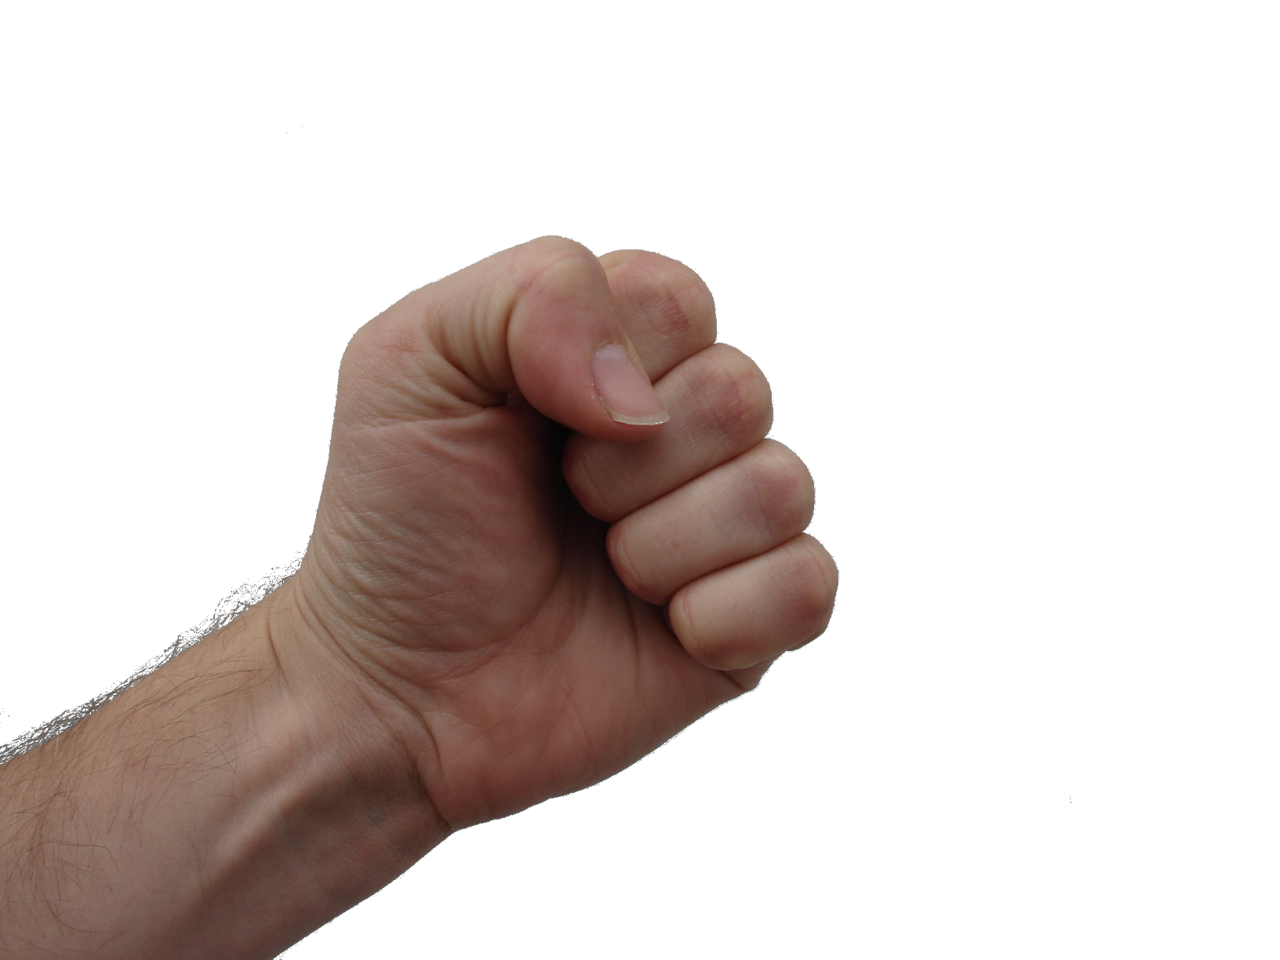 Human thumbs up png. File clenched fist wikimedia